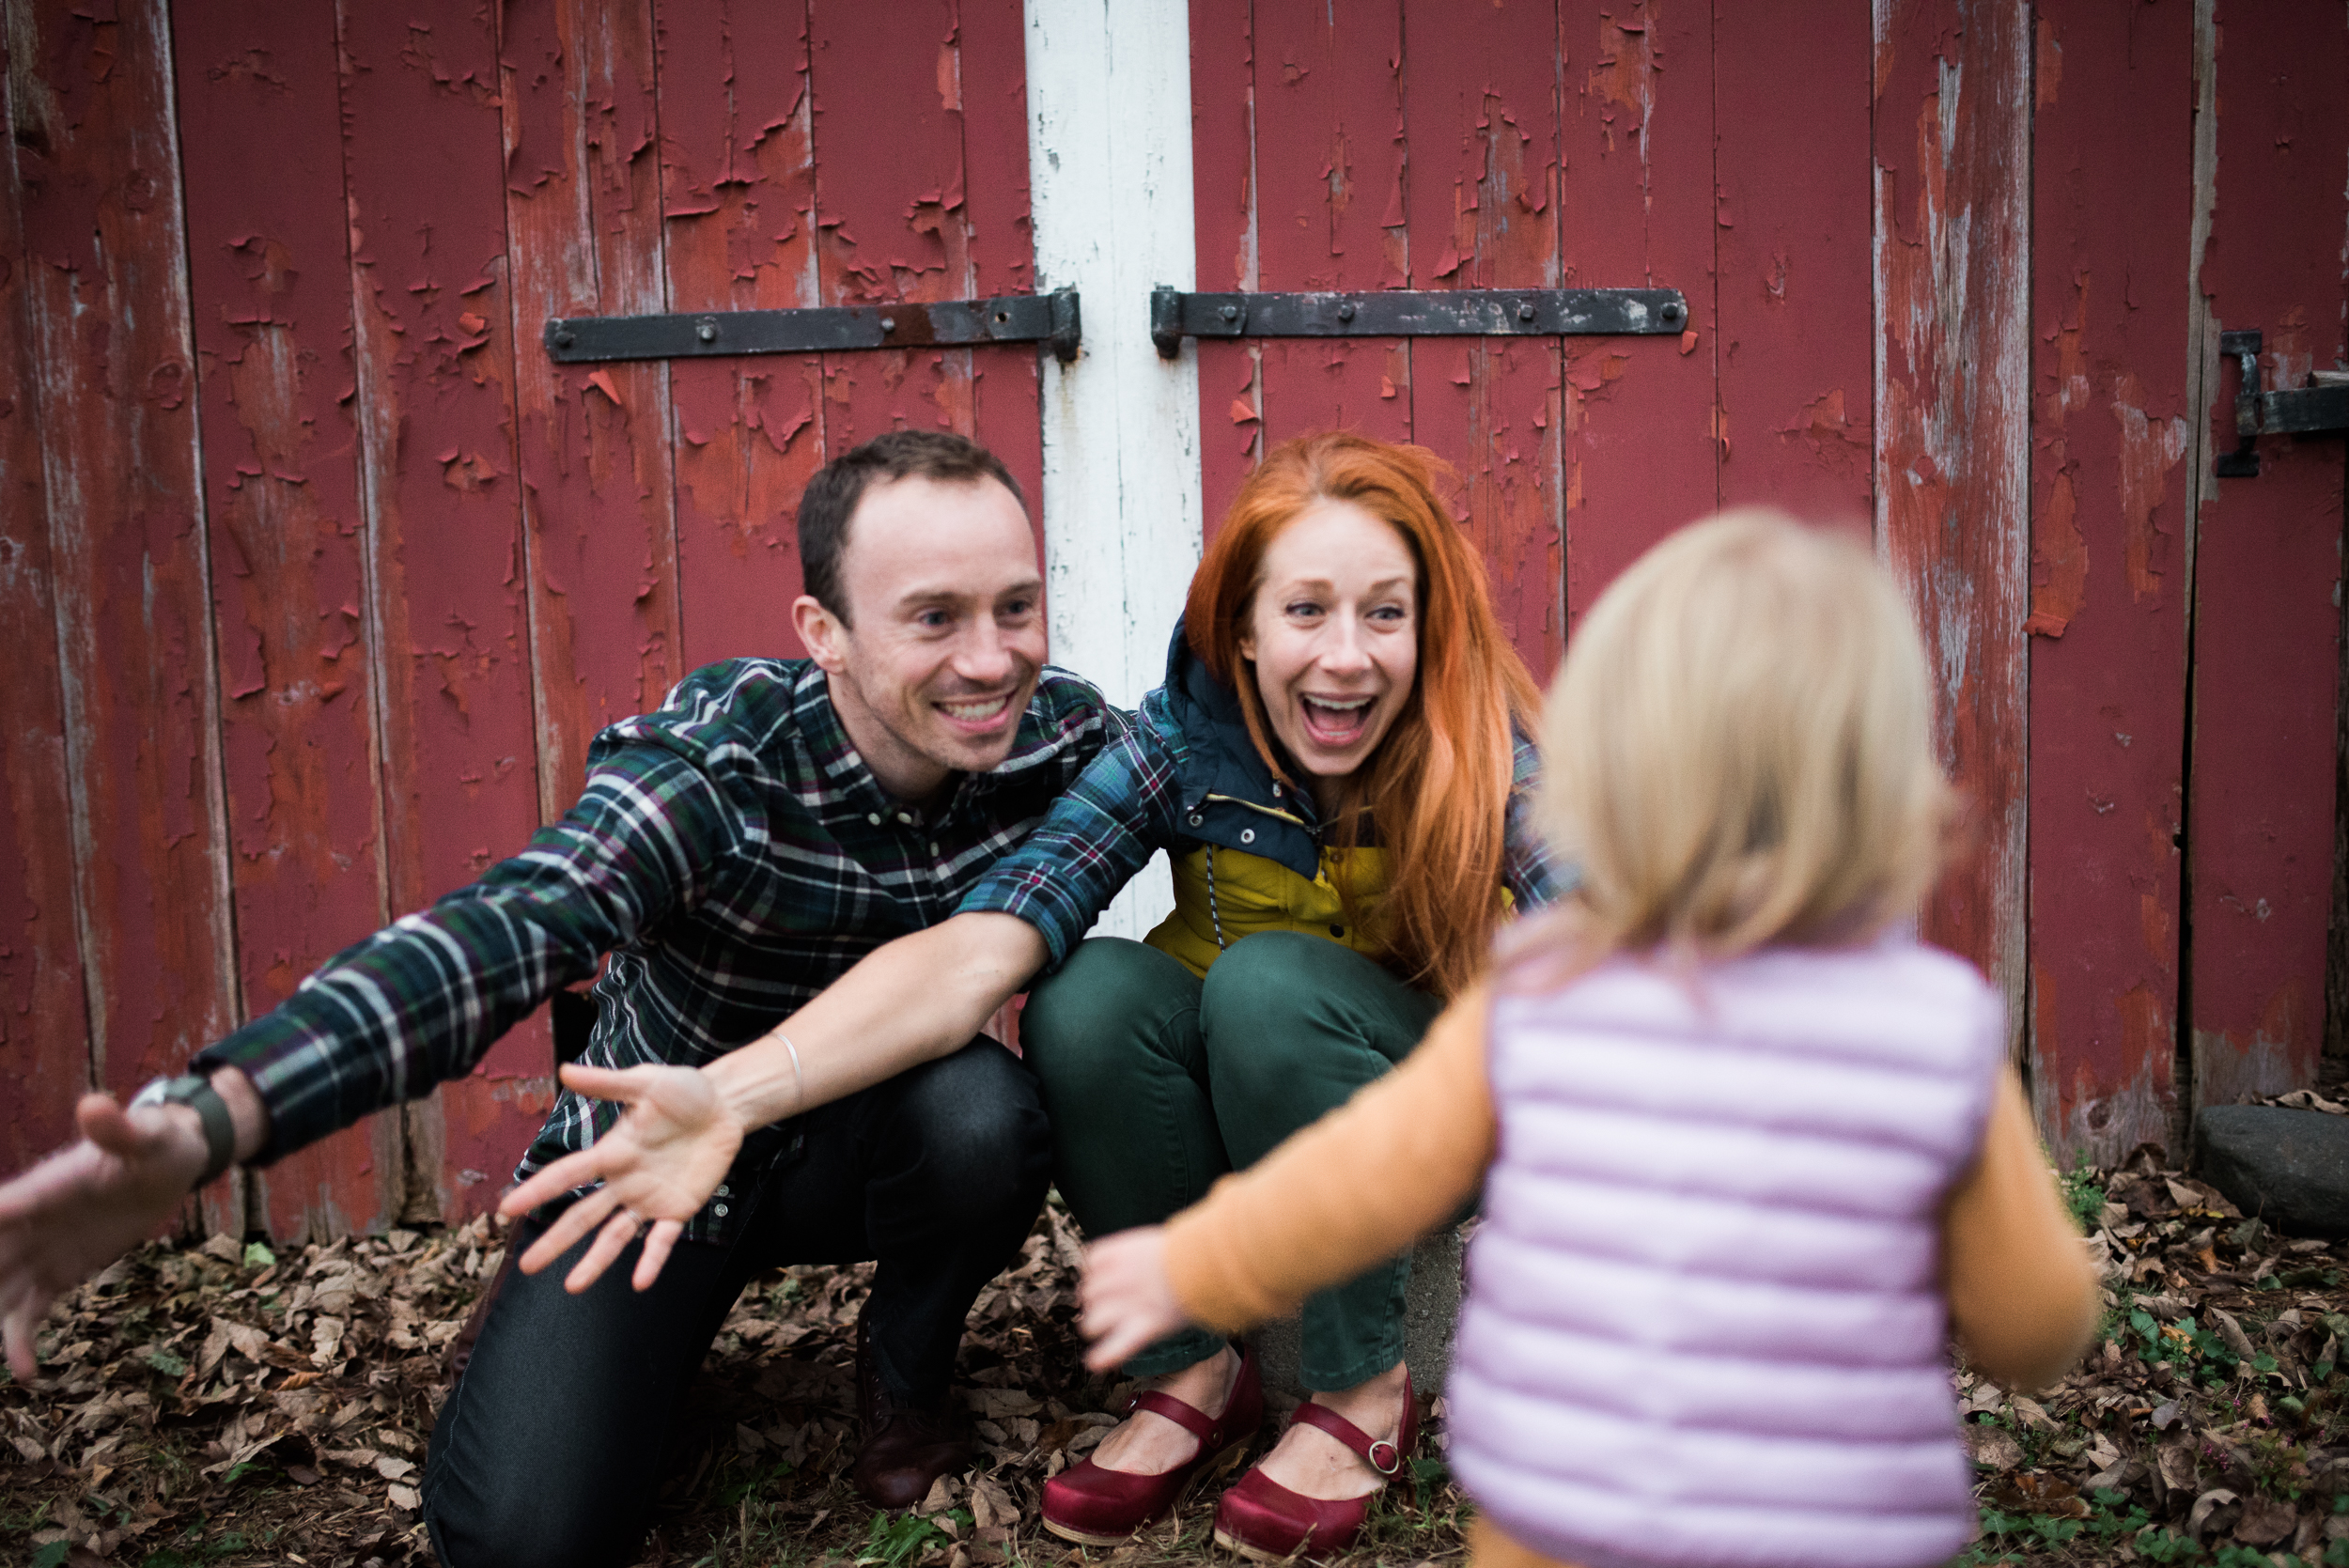 lifestyle family photo playing fun not posed running for a hug red New England barn in Litchfield County Connecticut by Lindsey Victoria Photography